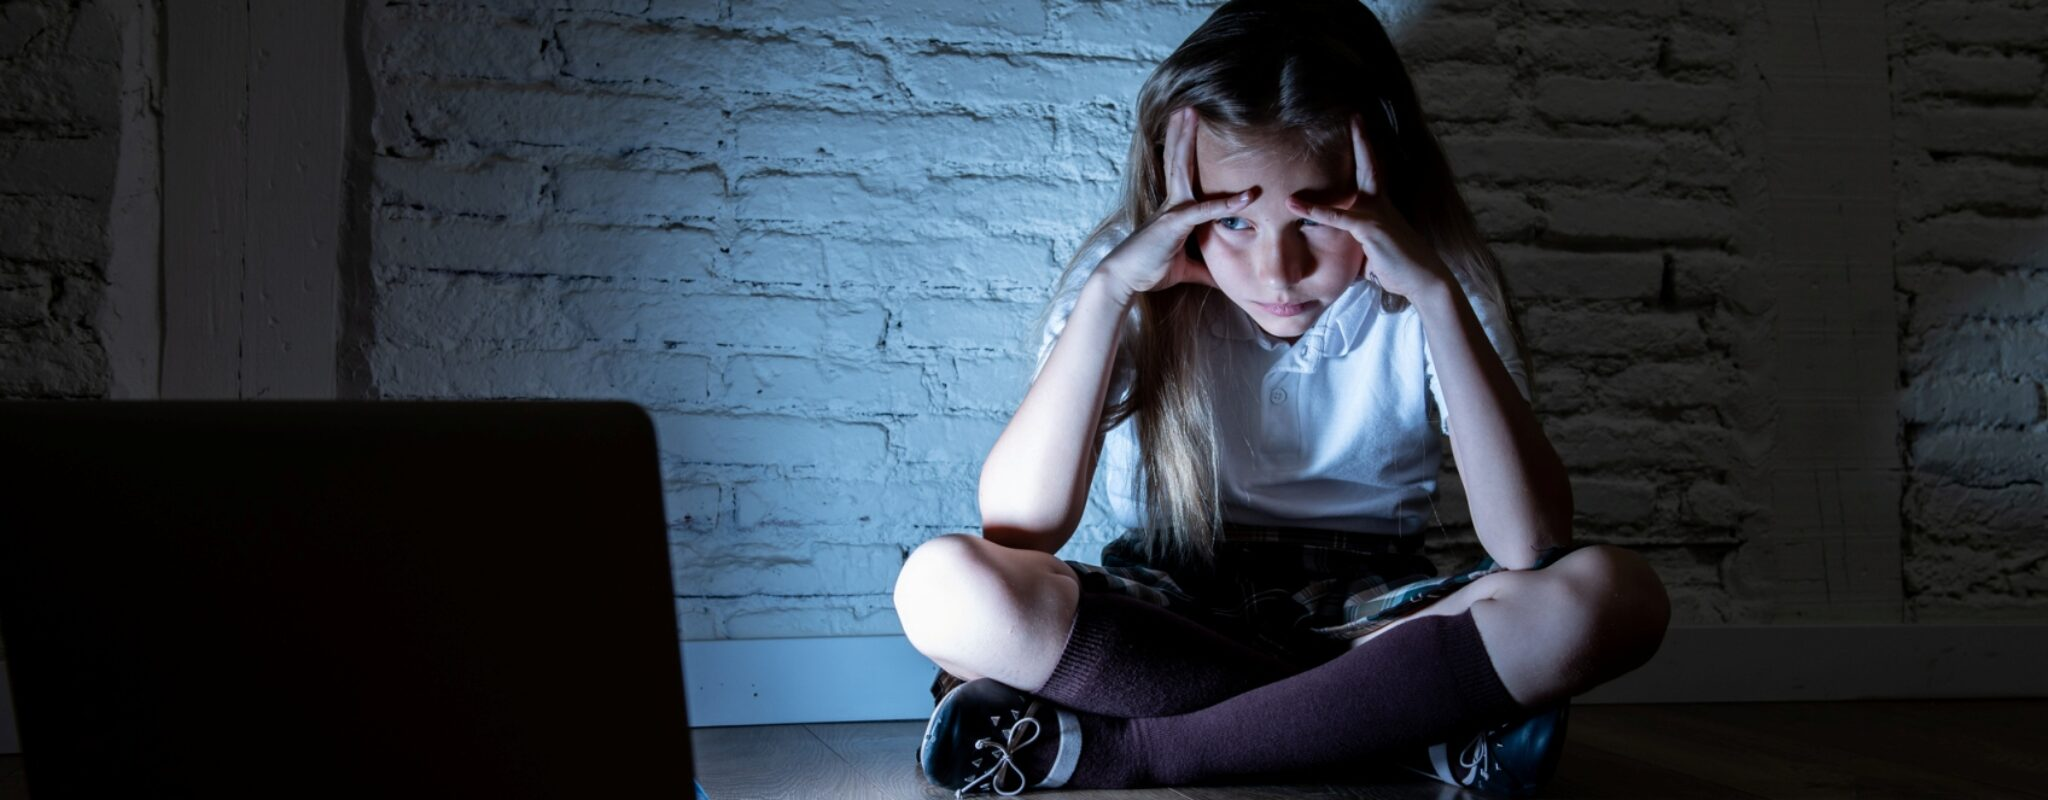 Online School and Bullying – Know the Signs and How to Prevent It